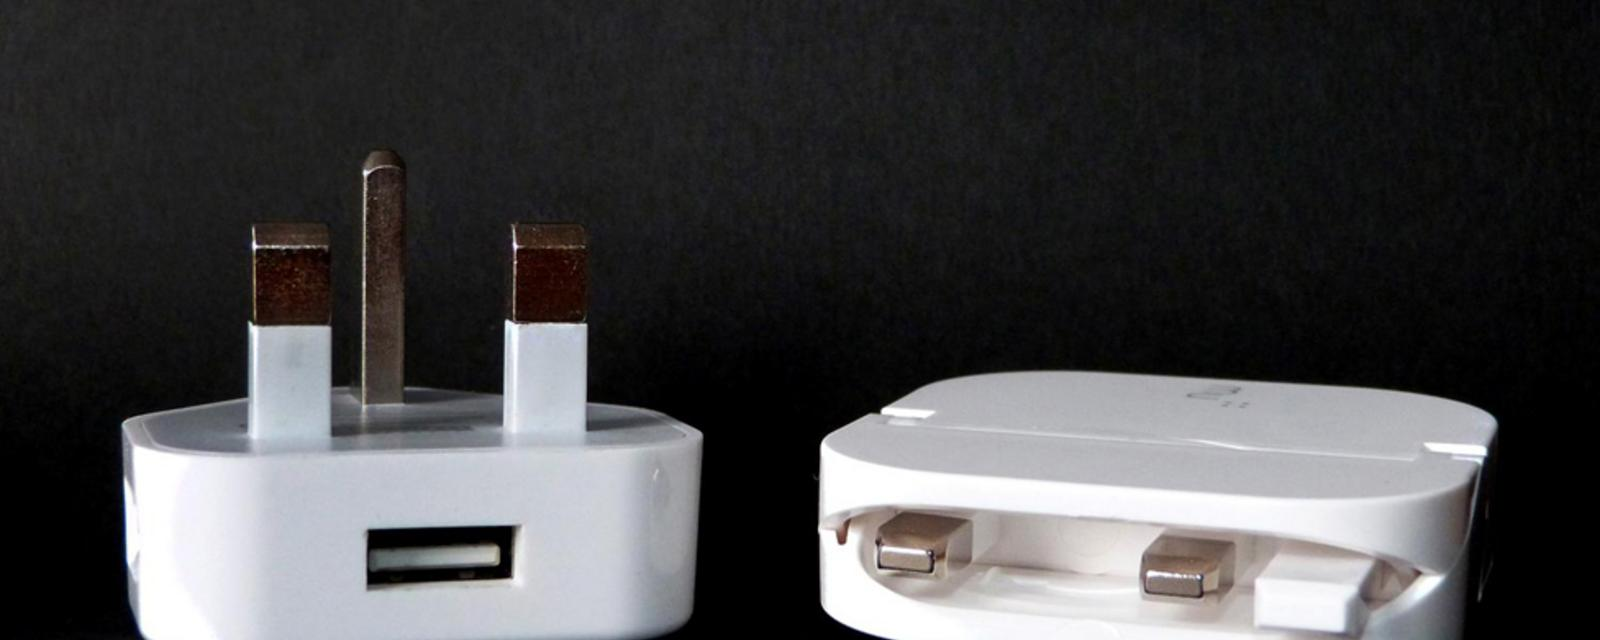 Foldable plug updates a decades-old design